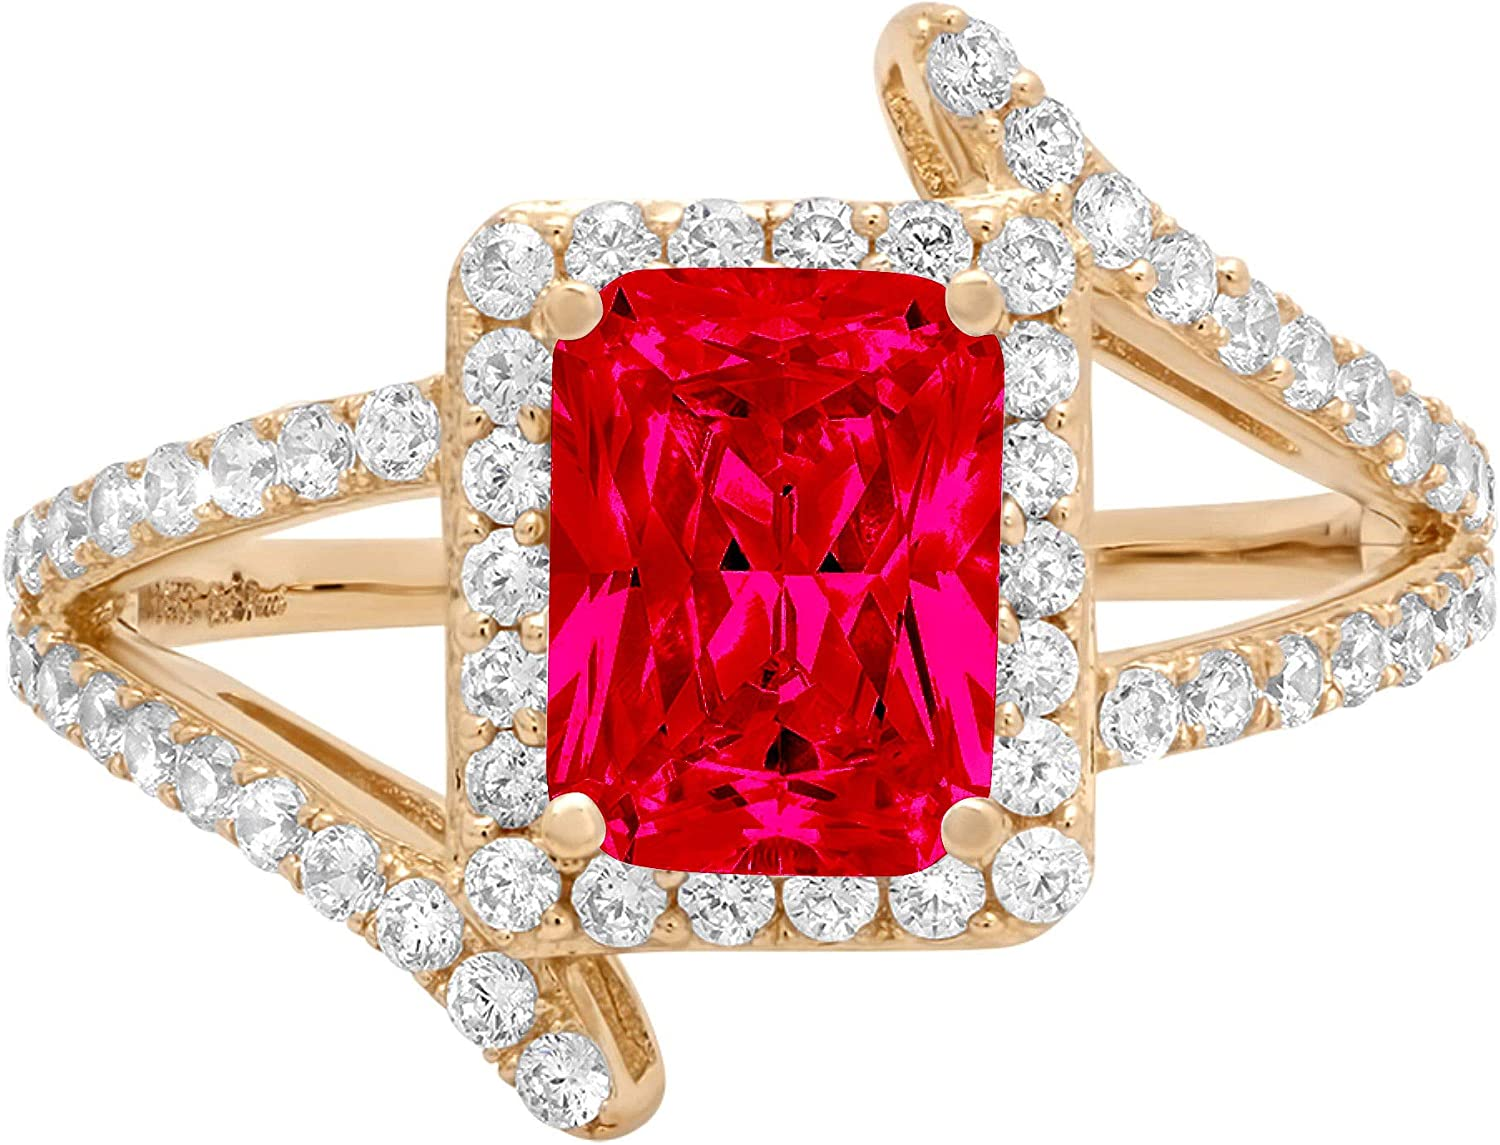 2.04ct Emerald Cut Solitaire with Accent Halo Criss Cross Flawless Ideal VVS1 Simulated CZ Red Ruby Engagement Promise Statement Anniversary Bridal Wedding Designer Ring 14k Yellow Gold